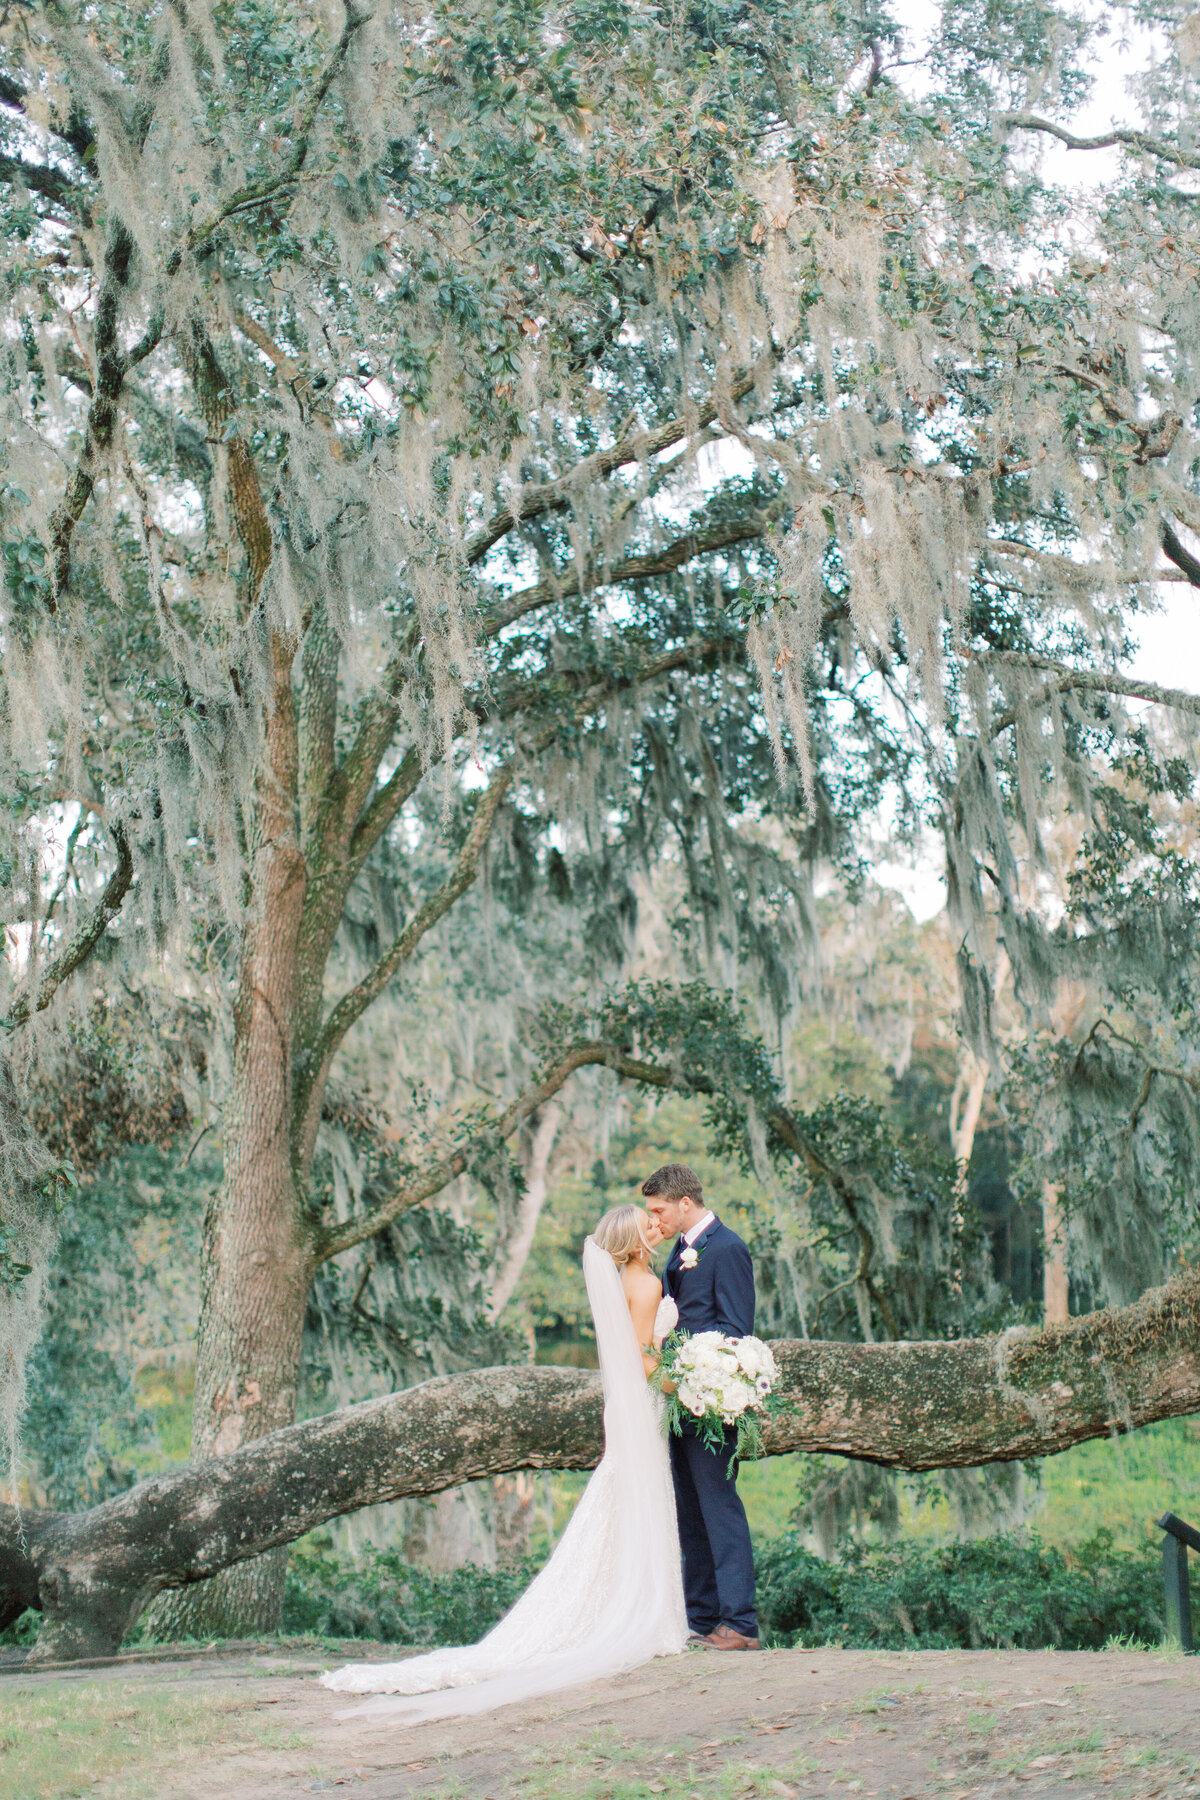 Melton_Wedding__Middleton_Place_Plantation_Charleston_South_Carolina_Jacksonville_Florida_Devon_Donnahoo_Photography__0813